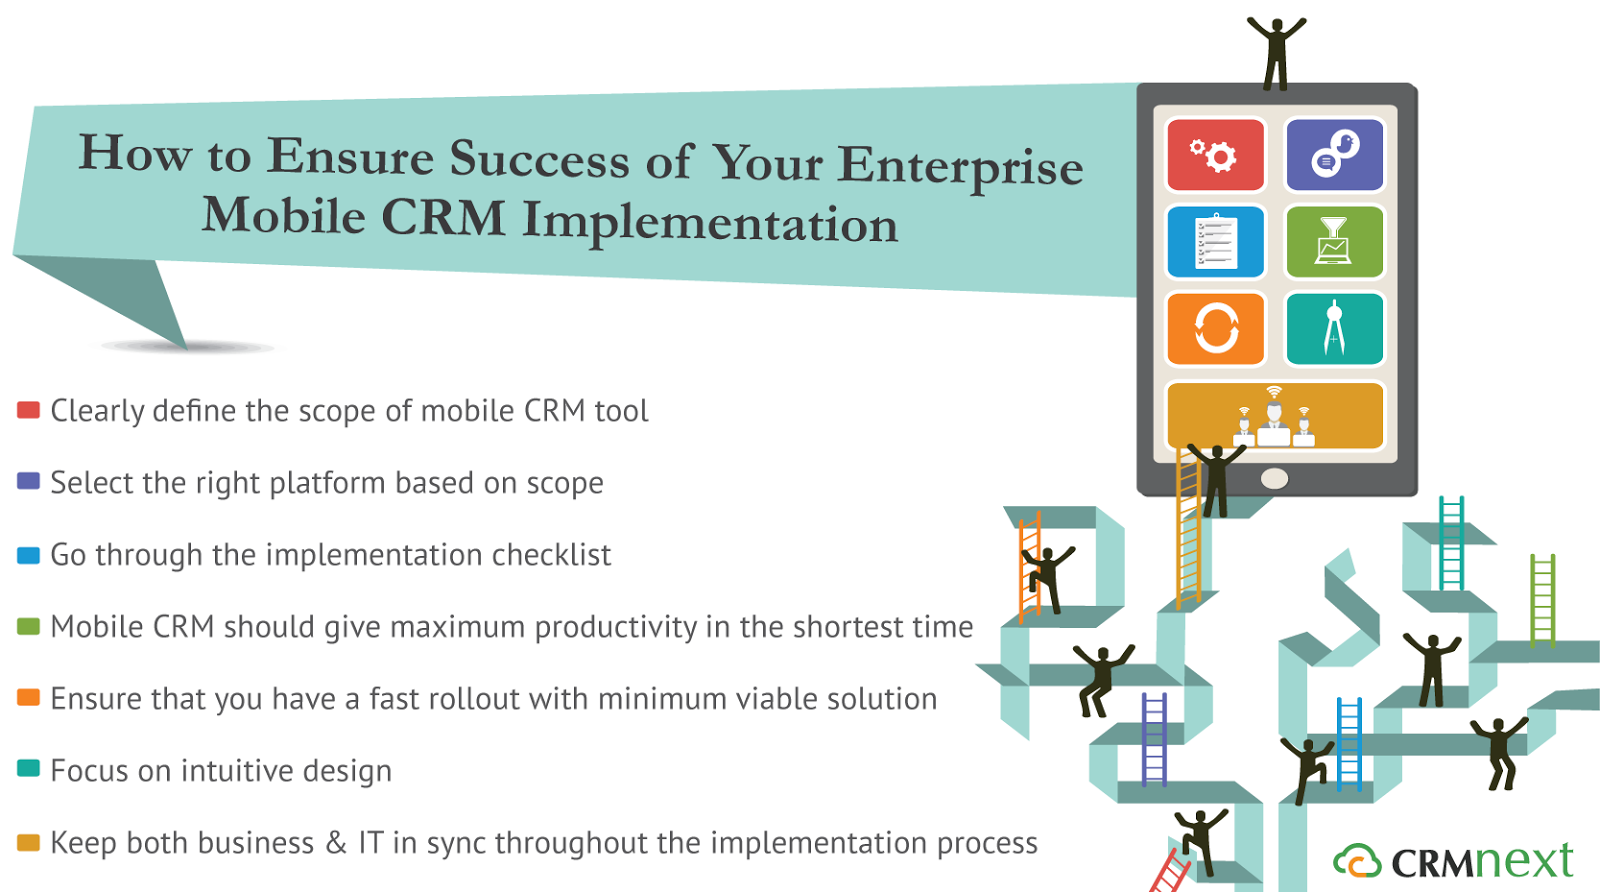 How to Ensure Success of Your Enterprise Mobile CRM Implementation